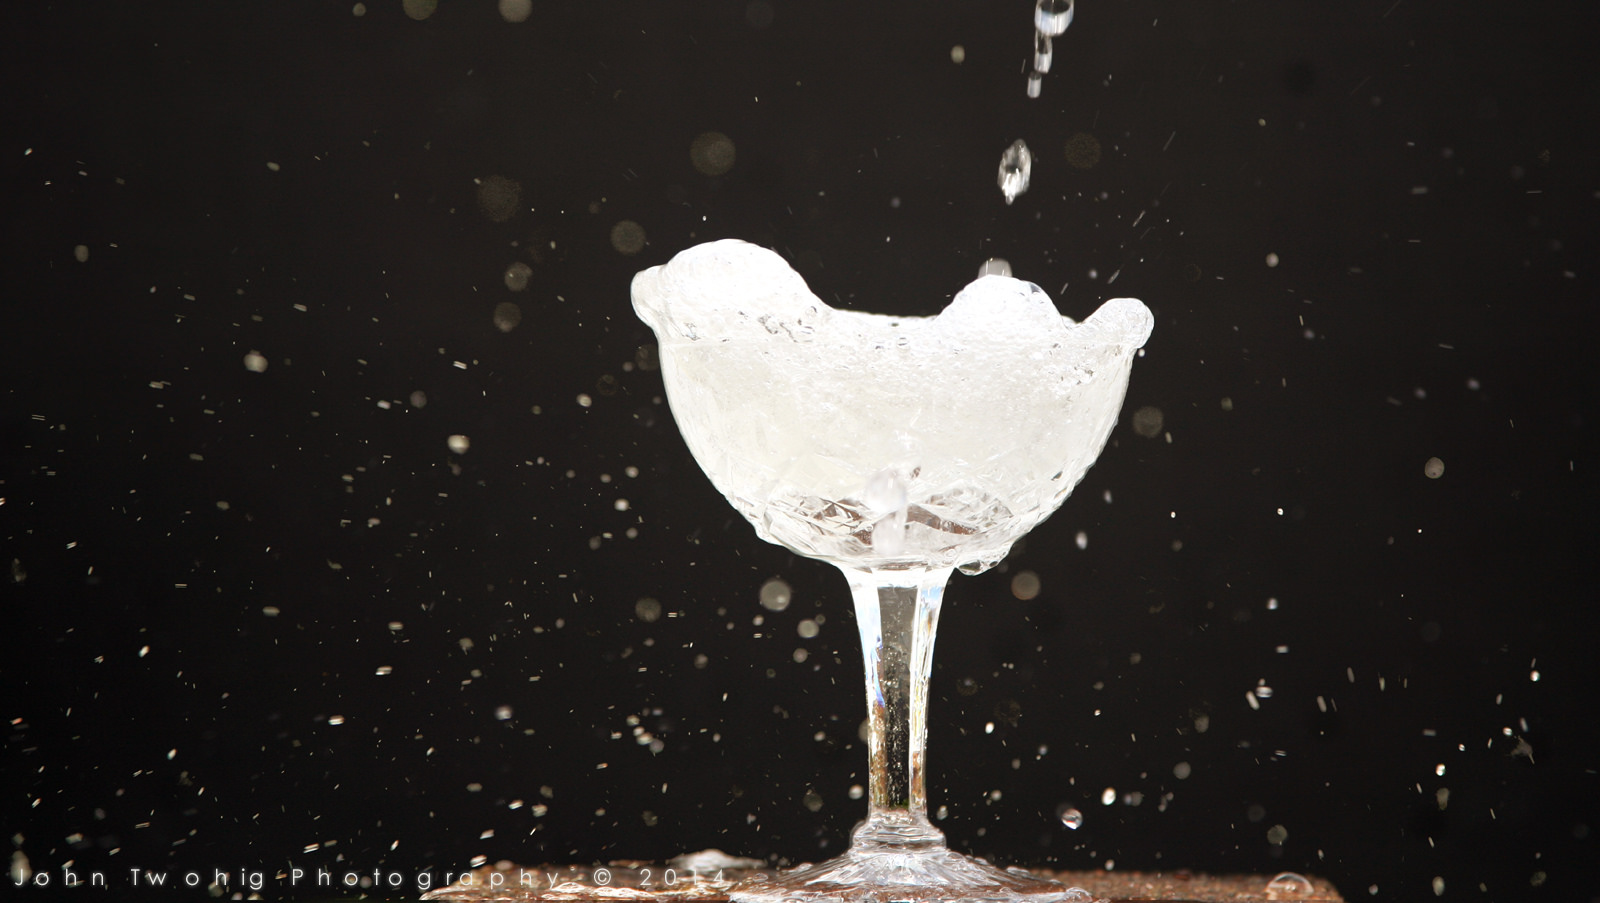 Champagne by John Twohig Photography CC via flickr